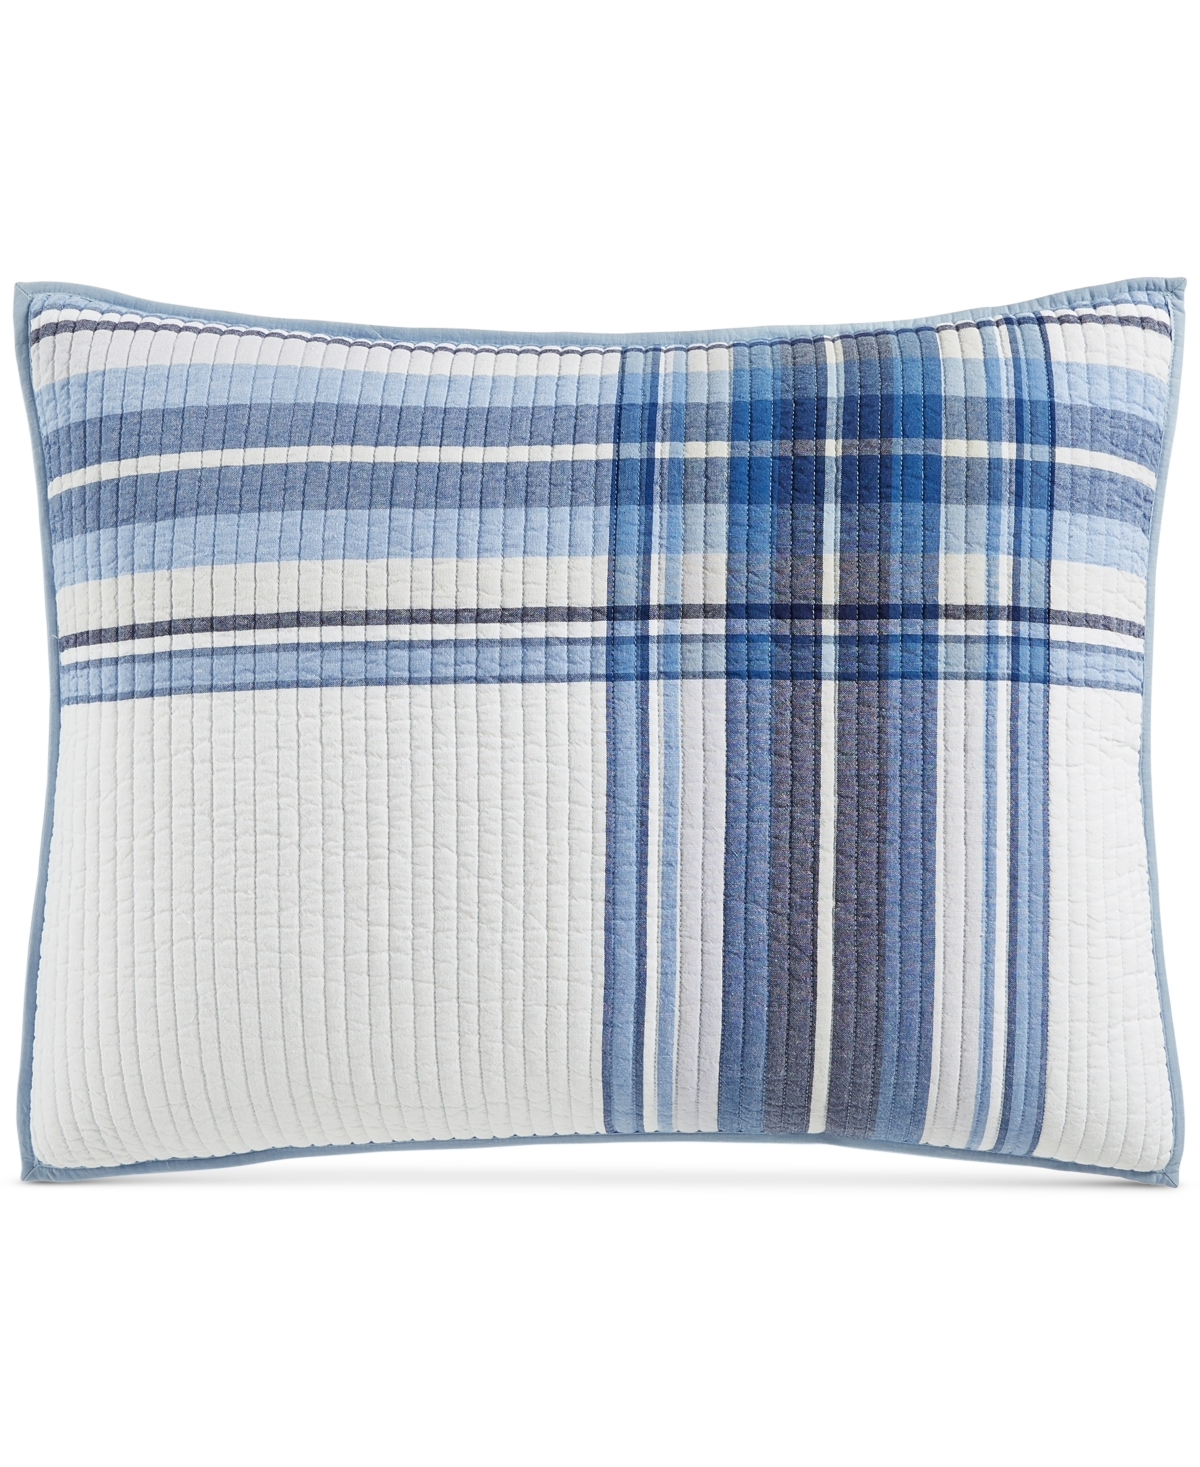 Martha Stewart Collection Engineered Plaid Reversible Standard Sham, Created for Macy's